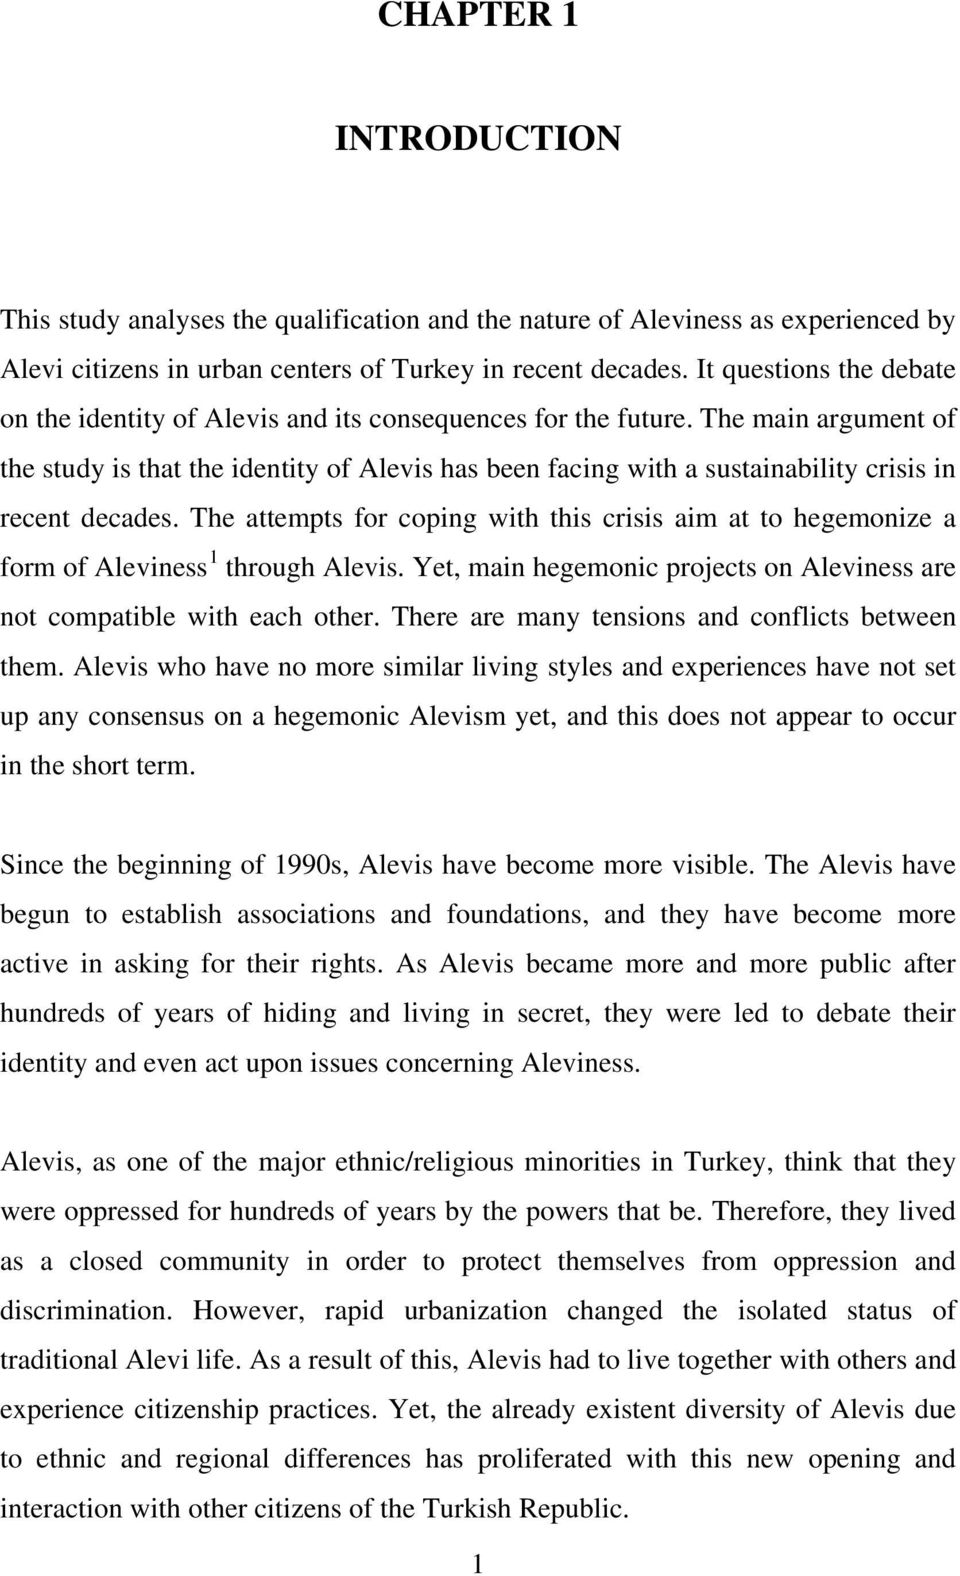 The main argument of the study is that the identity of Alevis has been facing with a sustainability crisis in recent decades.